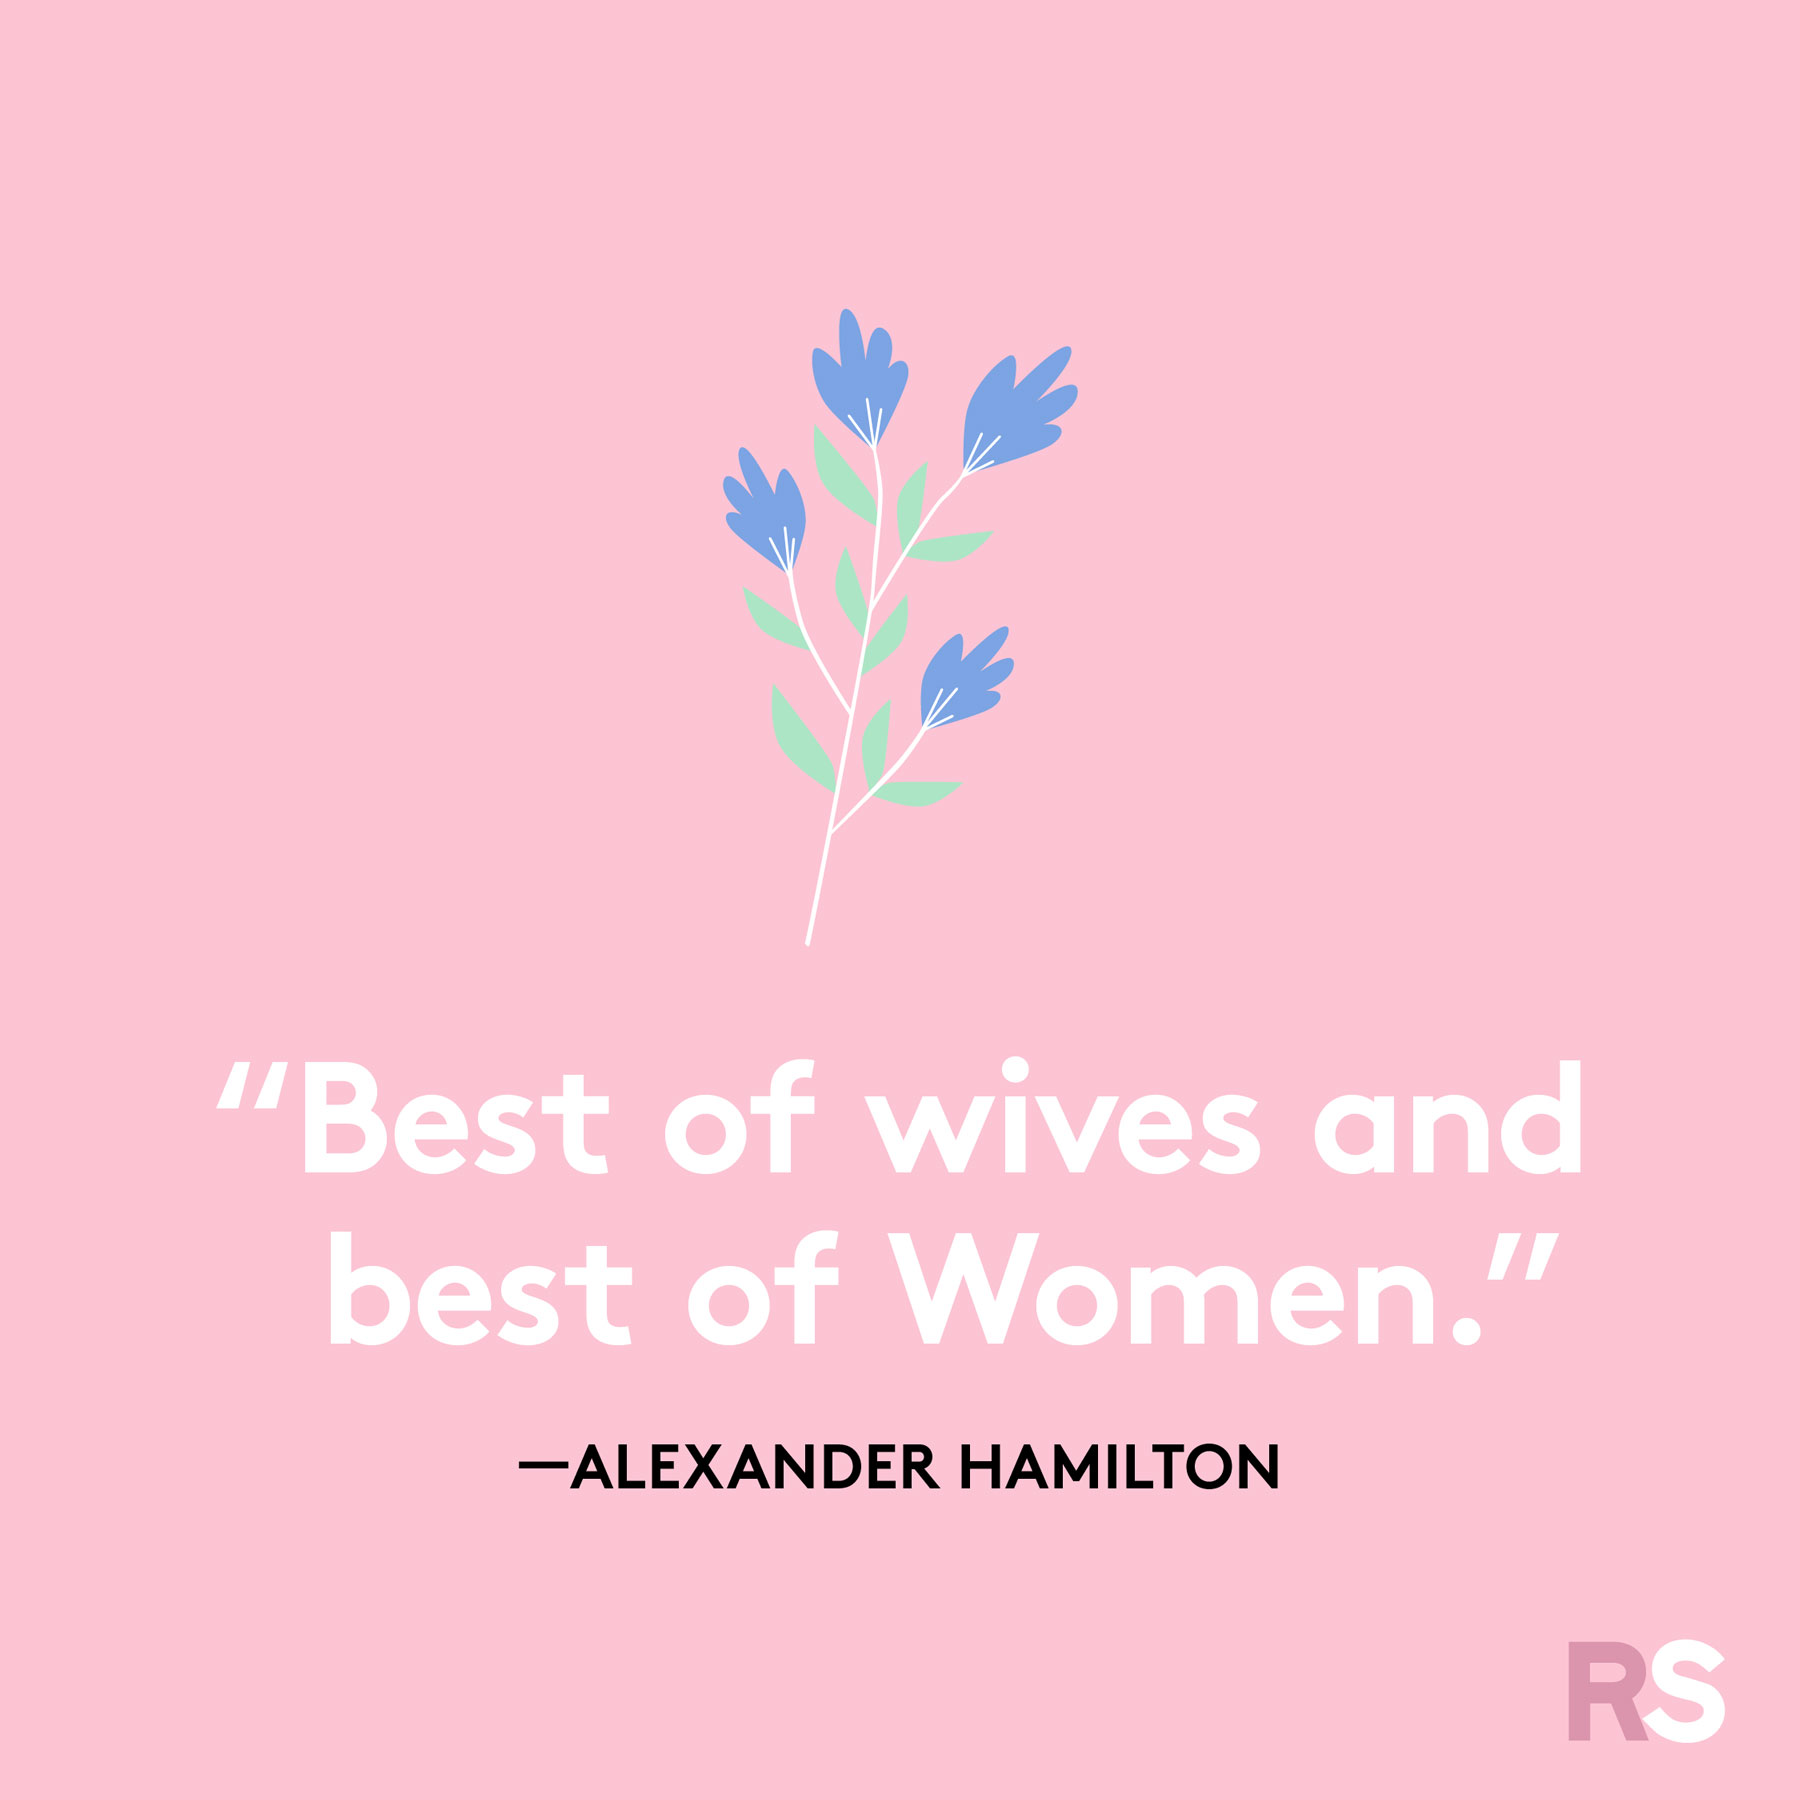 Mother's Day quotes and sayings - quote by Alexander Hamilton